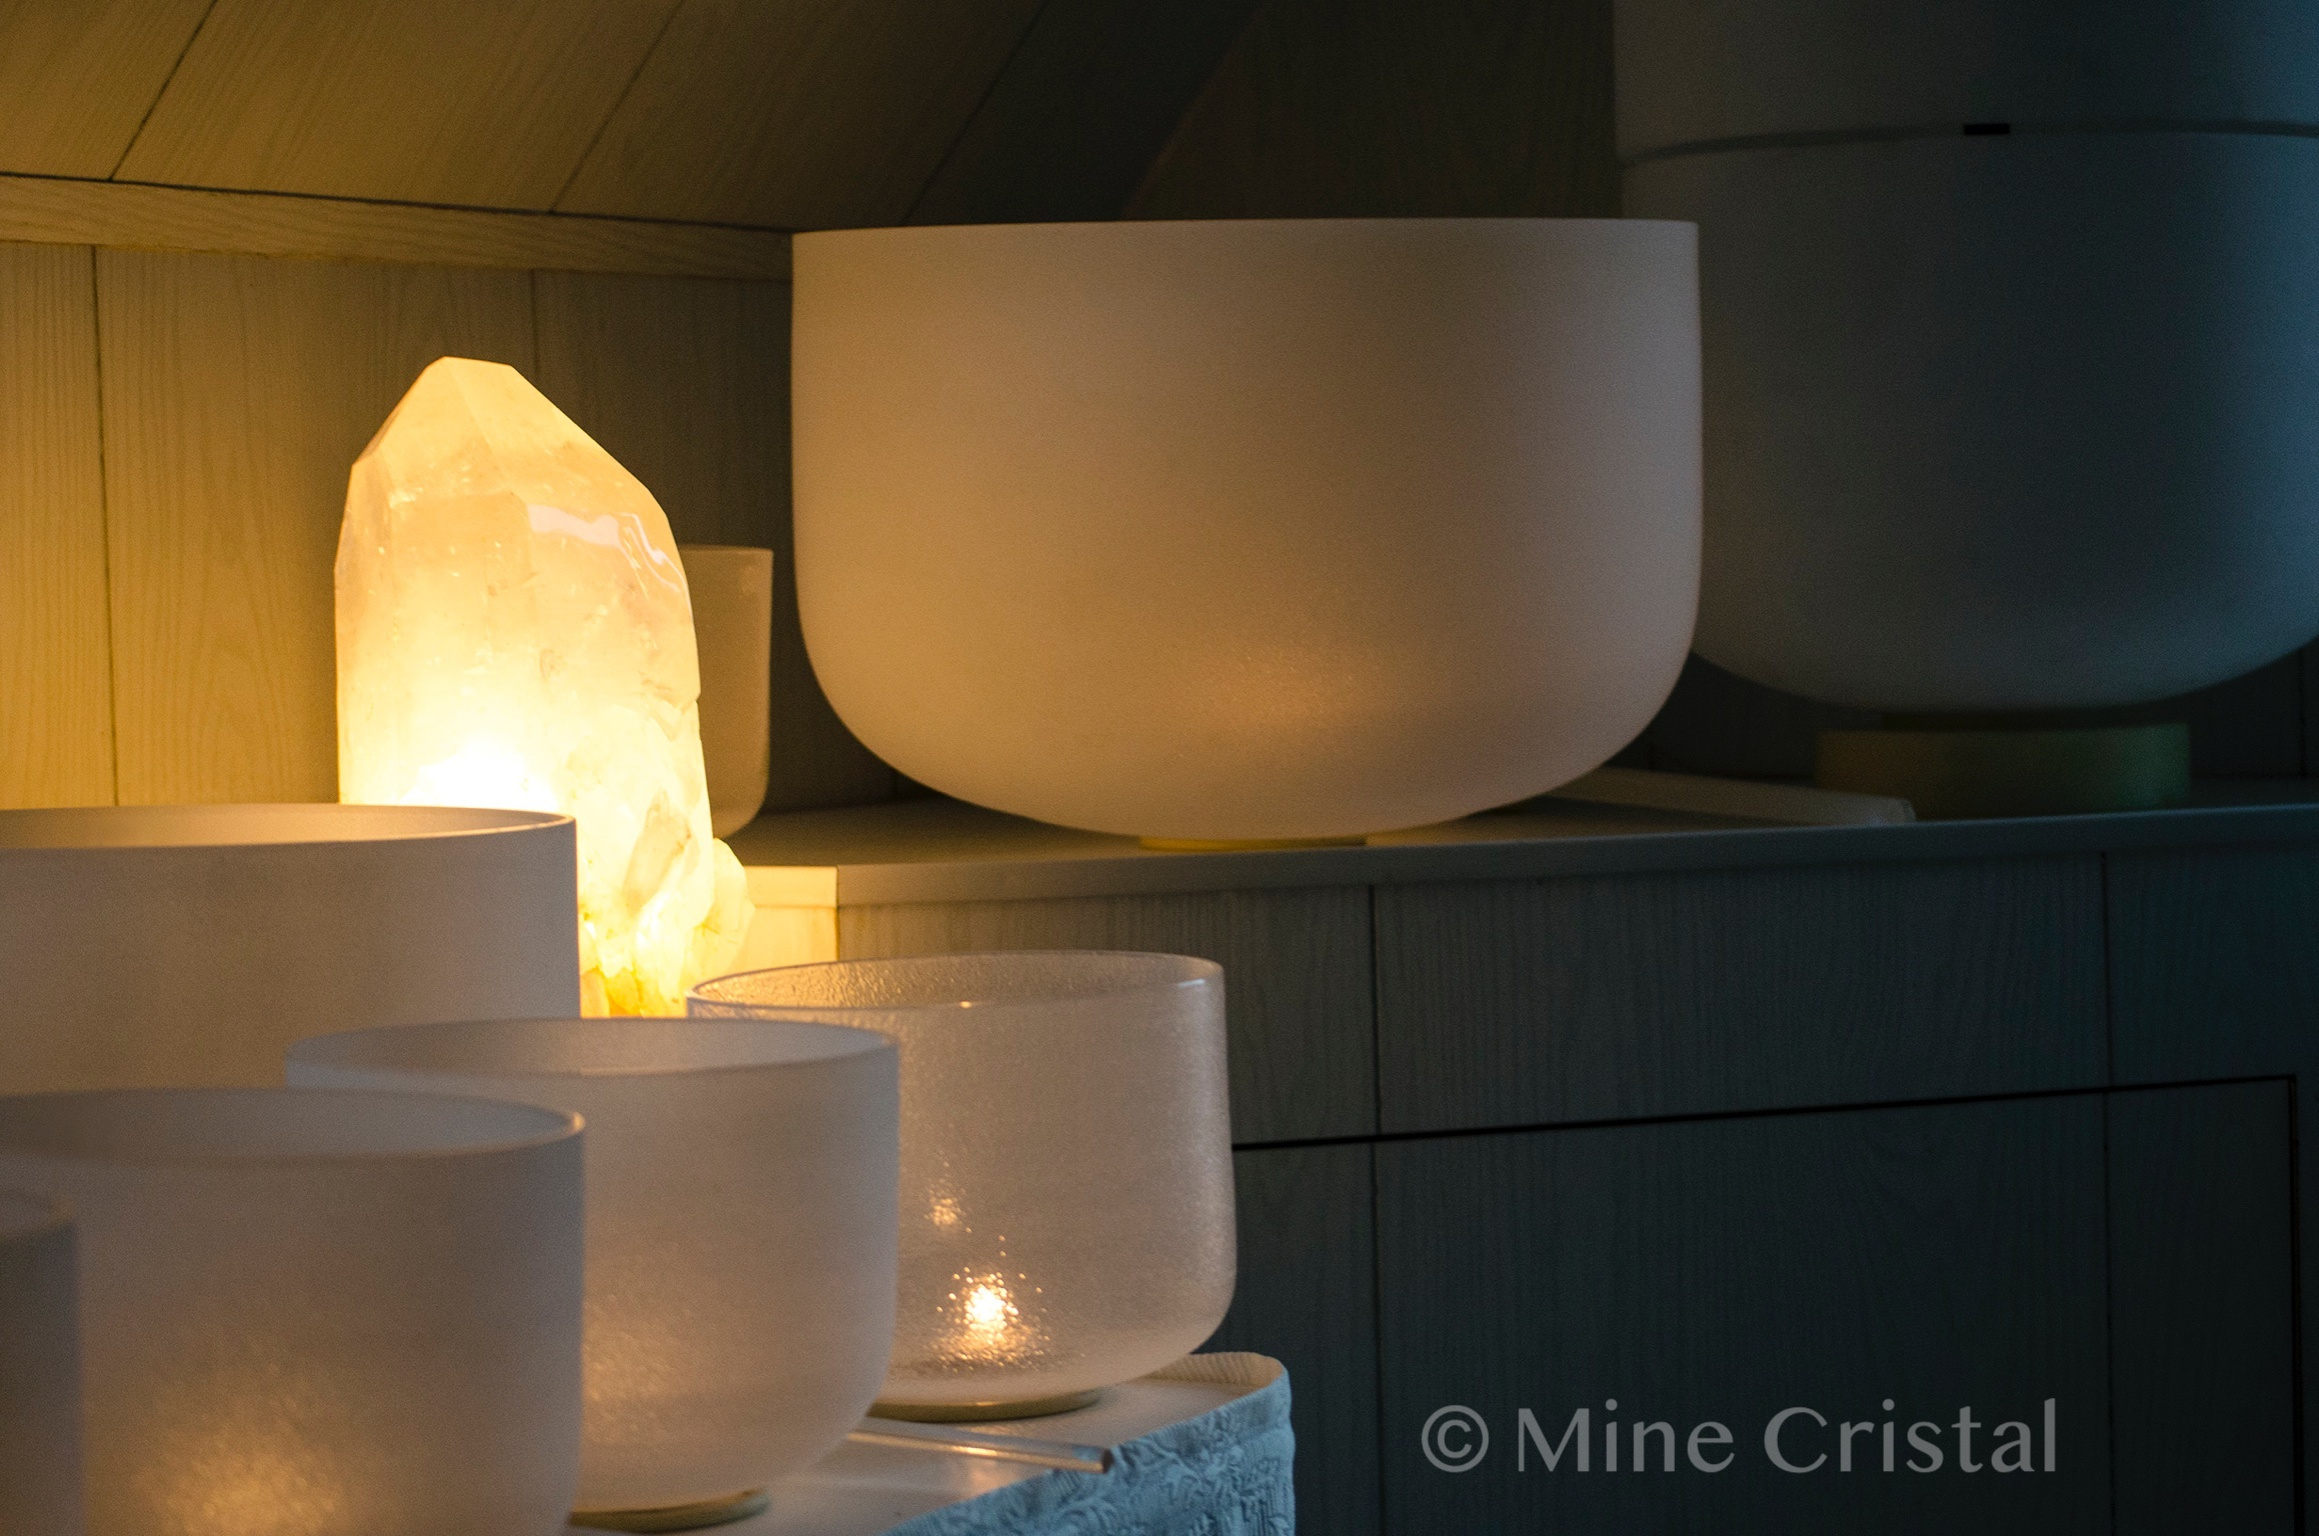 Crystal singing bowls in the concert hall.